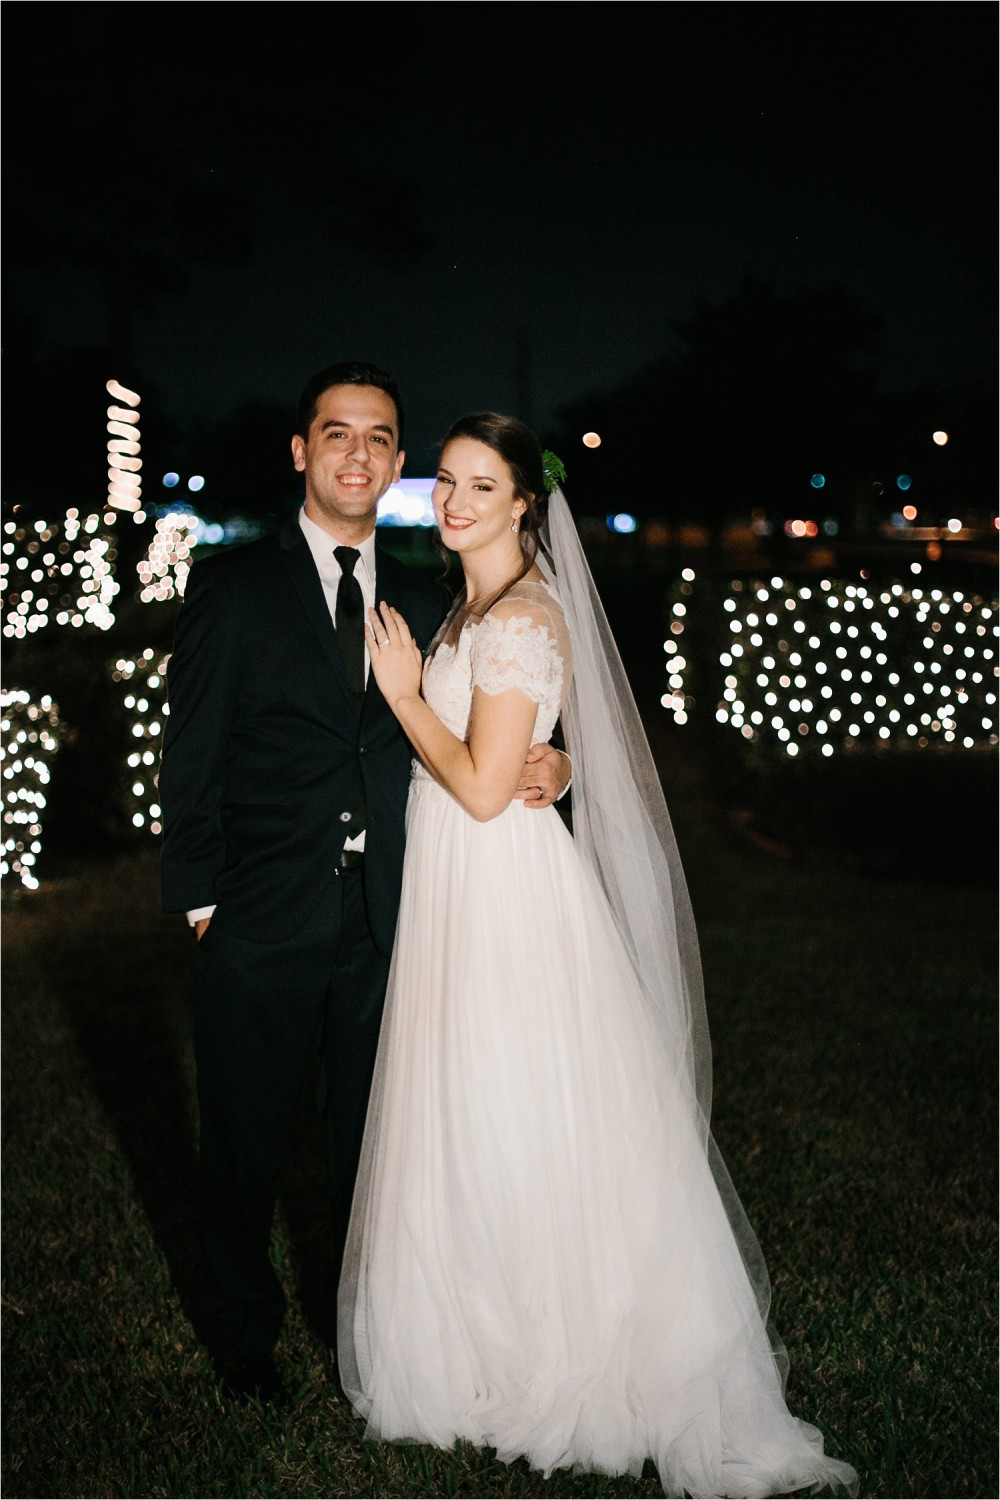 Alaina + Josh __ a wintertime wedding in Houston, TX with Christmas accents and a BHLDN dress by North Texas Wedding Photographer Rachel Meagan Photography _ 57